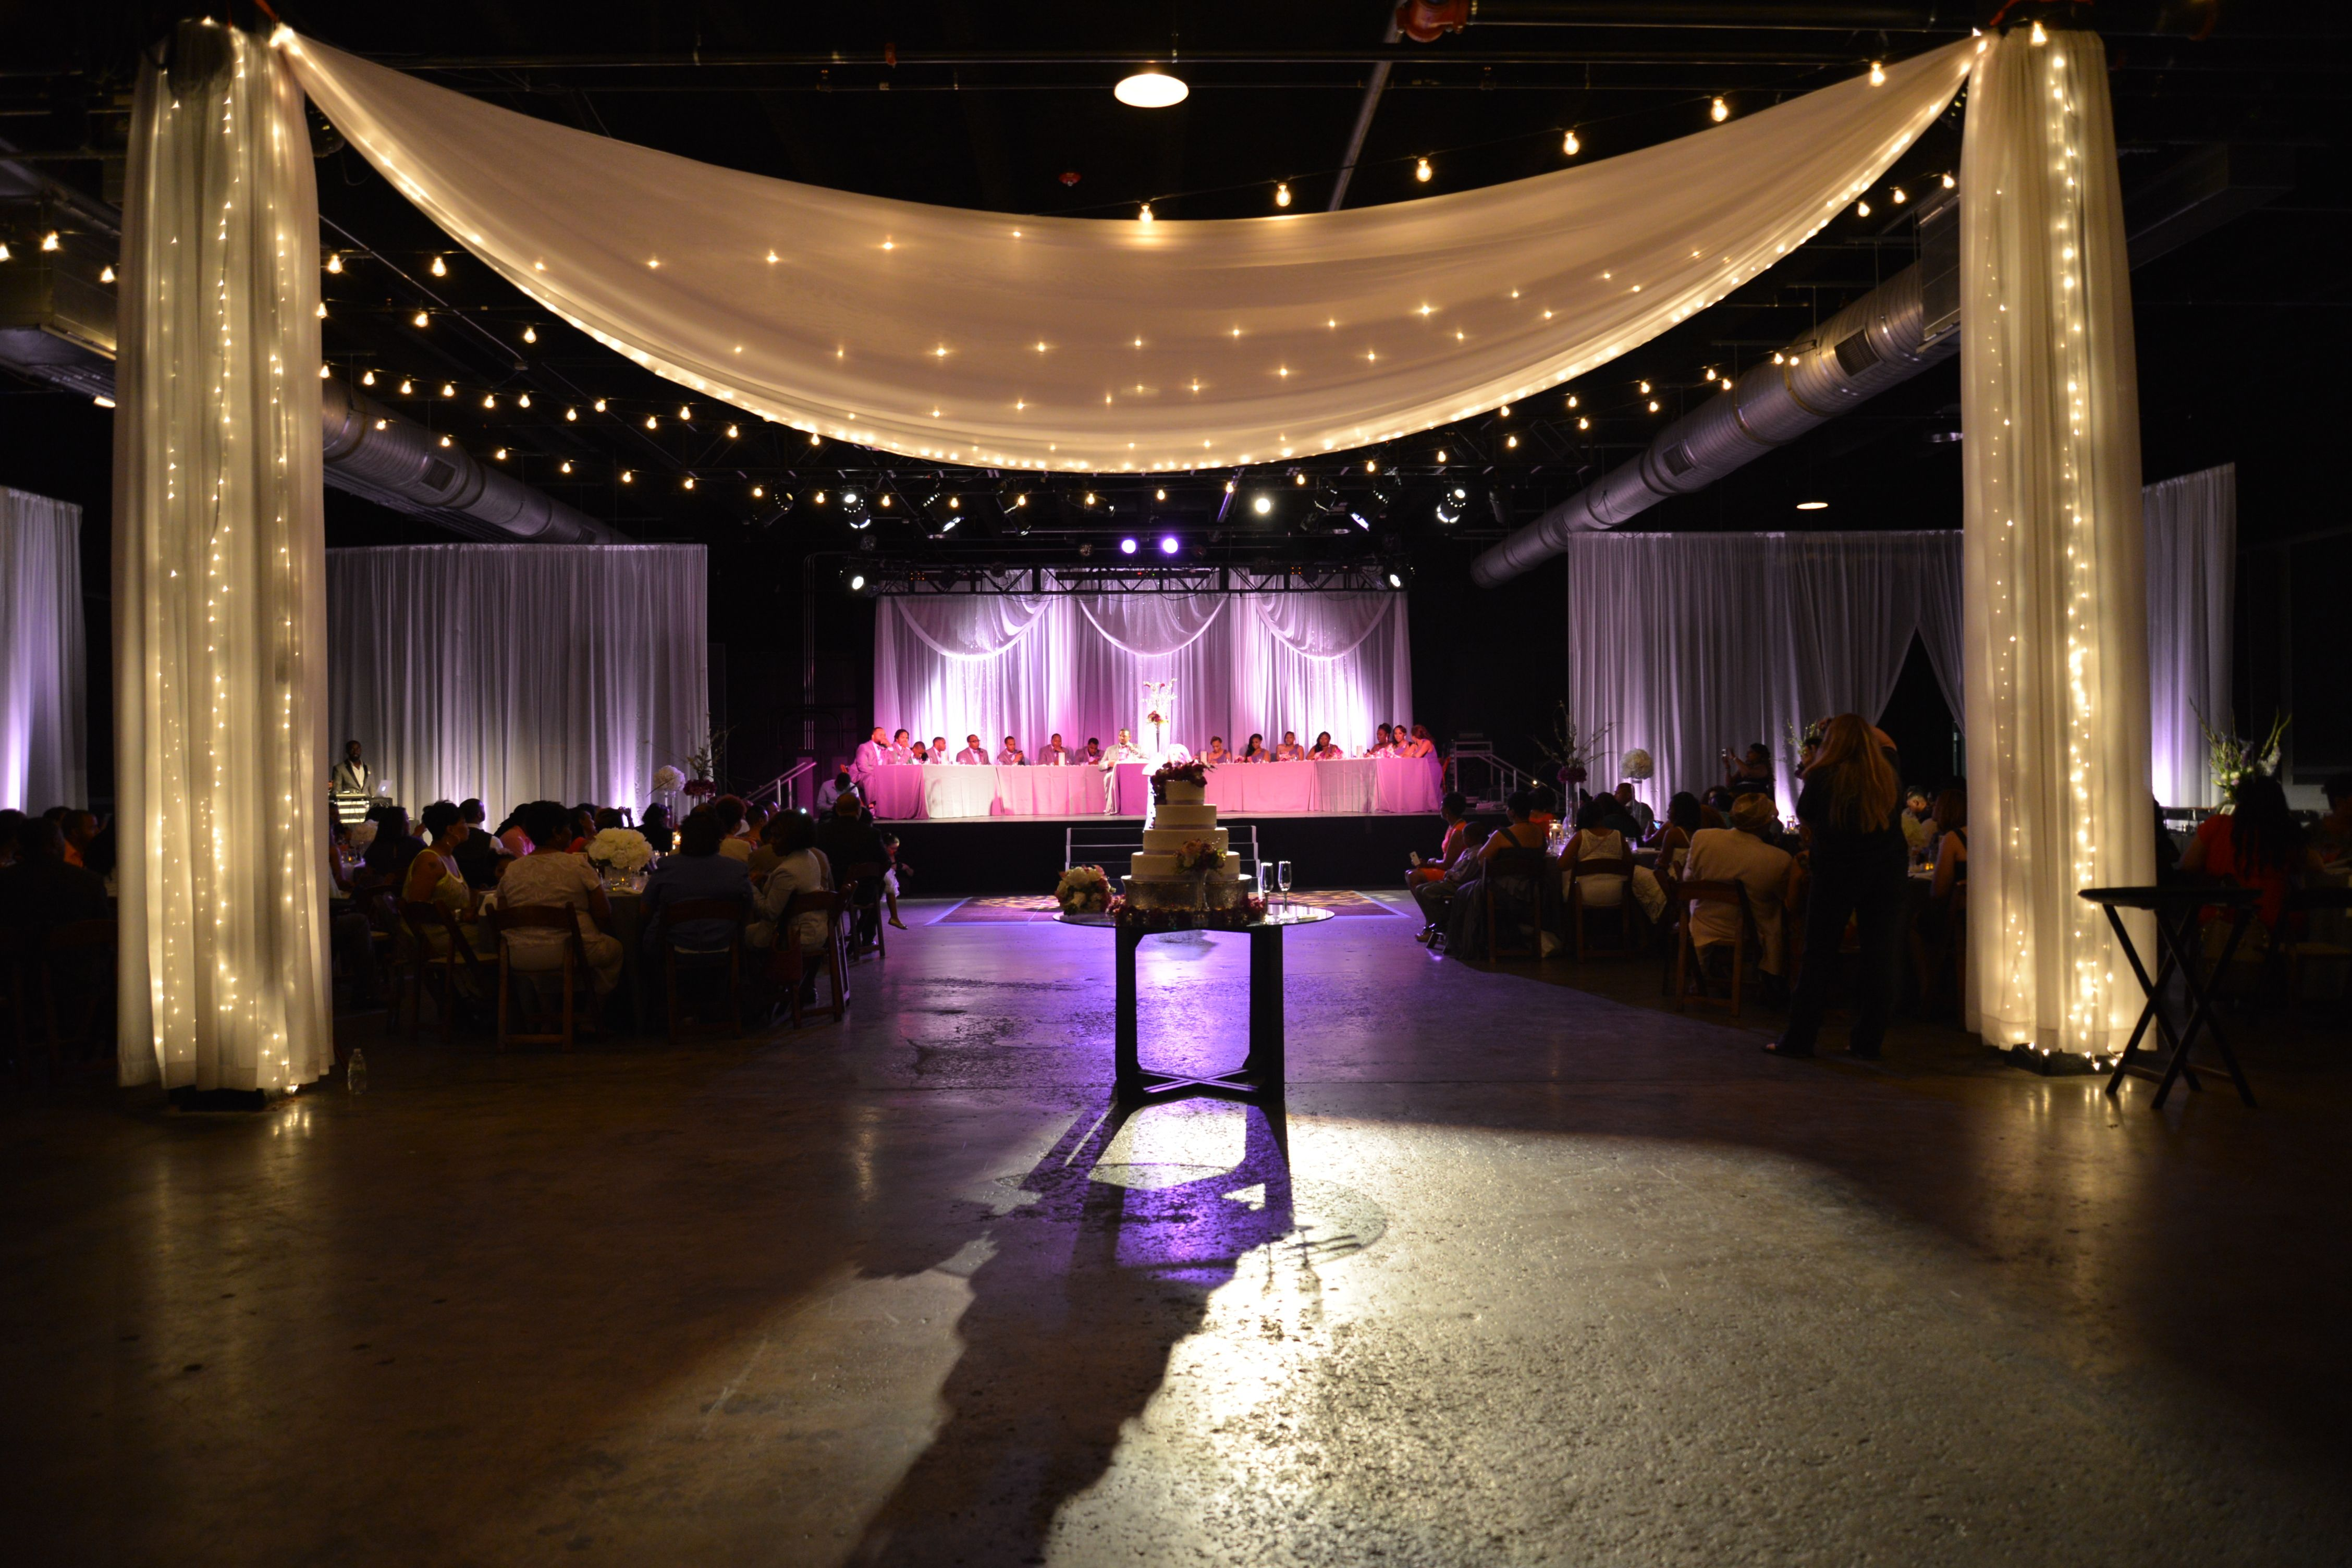 What Can Drapery Mood Lighting And A Cohesive Design Do For Your Wedding Learn With Debbie Of Nashville Event Company Events Plus